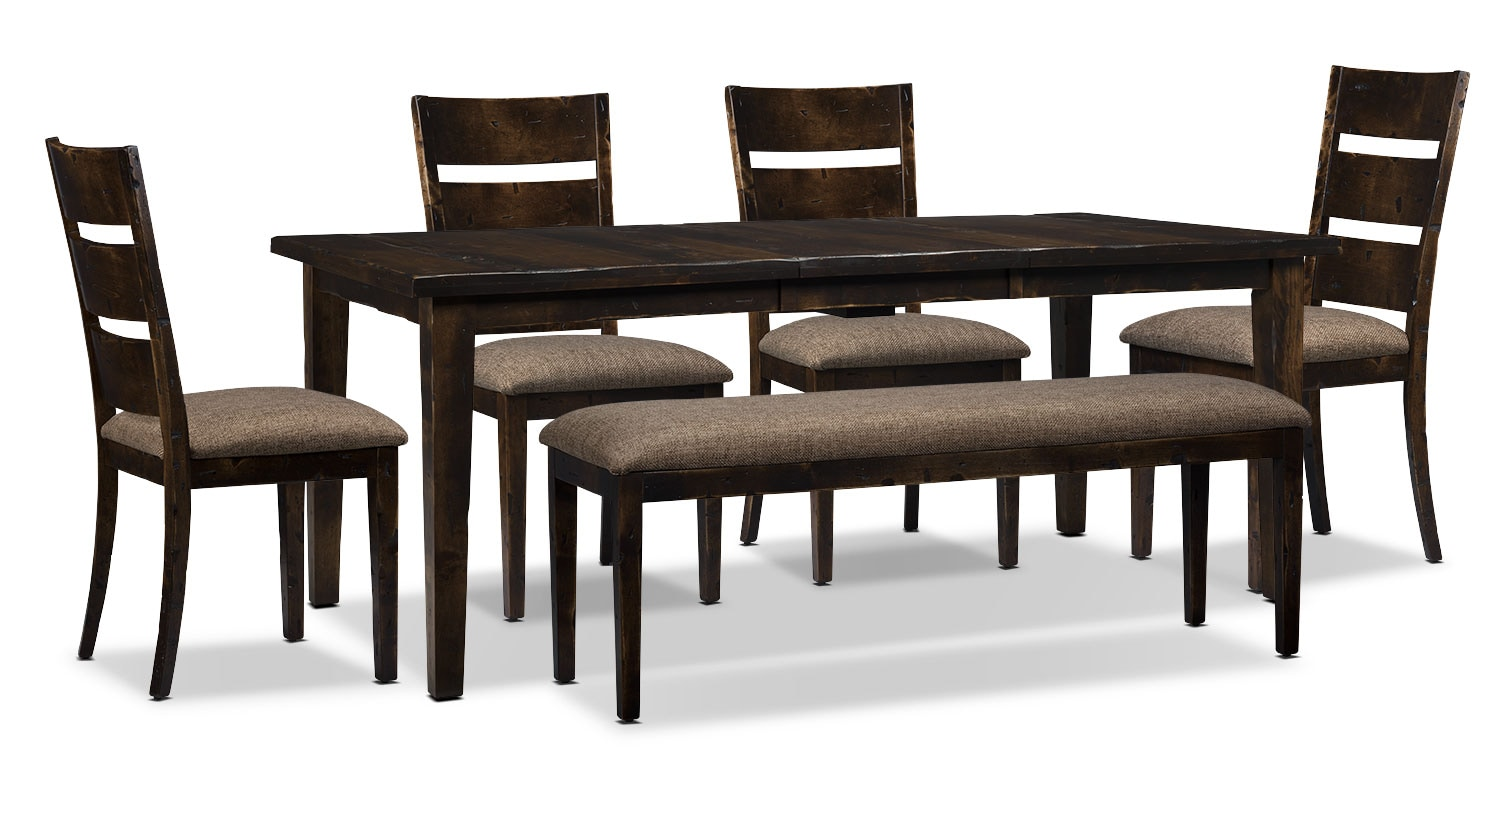 Dining Room Furniture - Bordeaux 6-Piece Dining Package with Single-Leaf Table – Brown